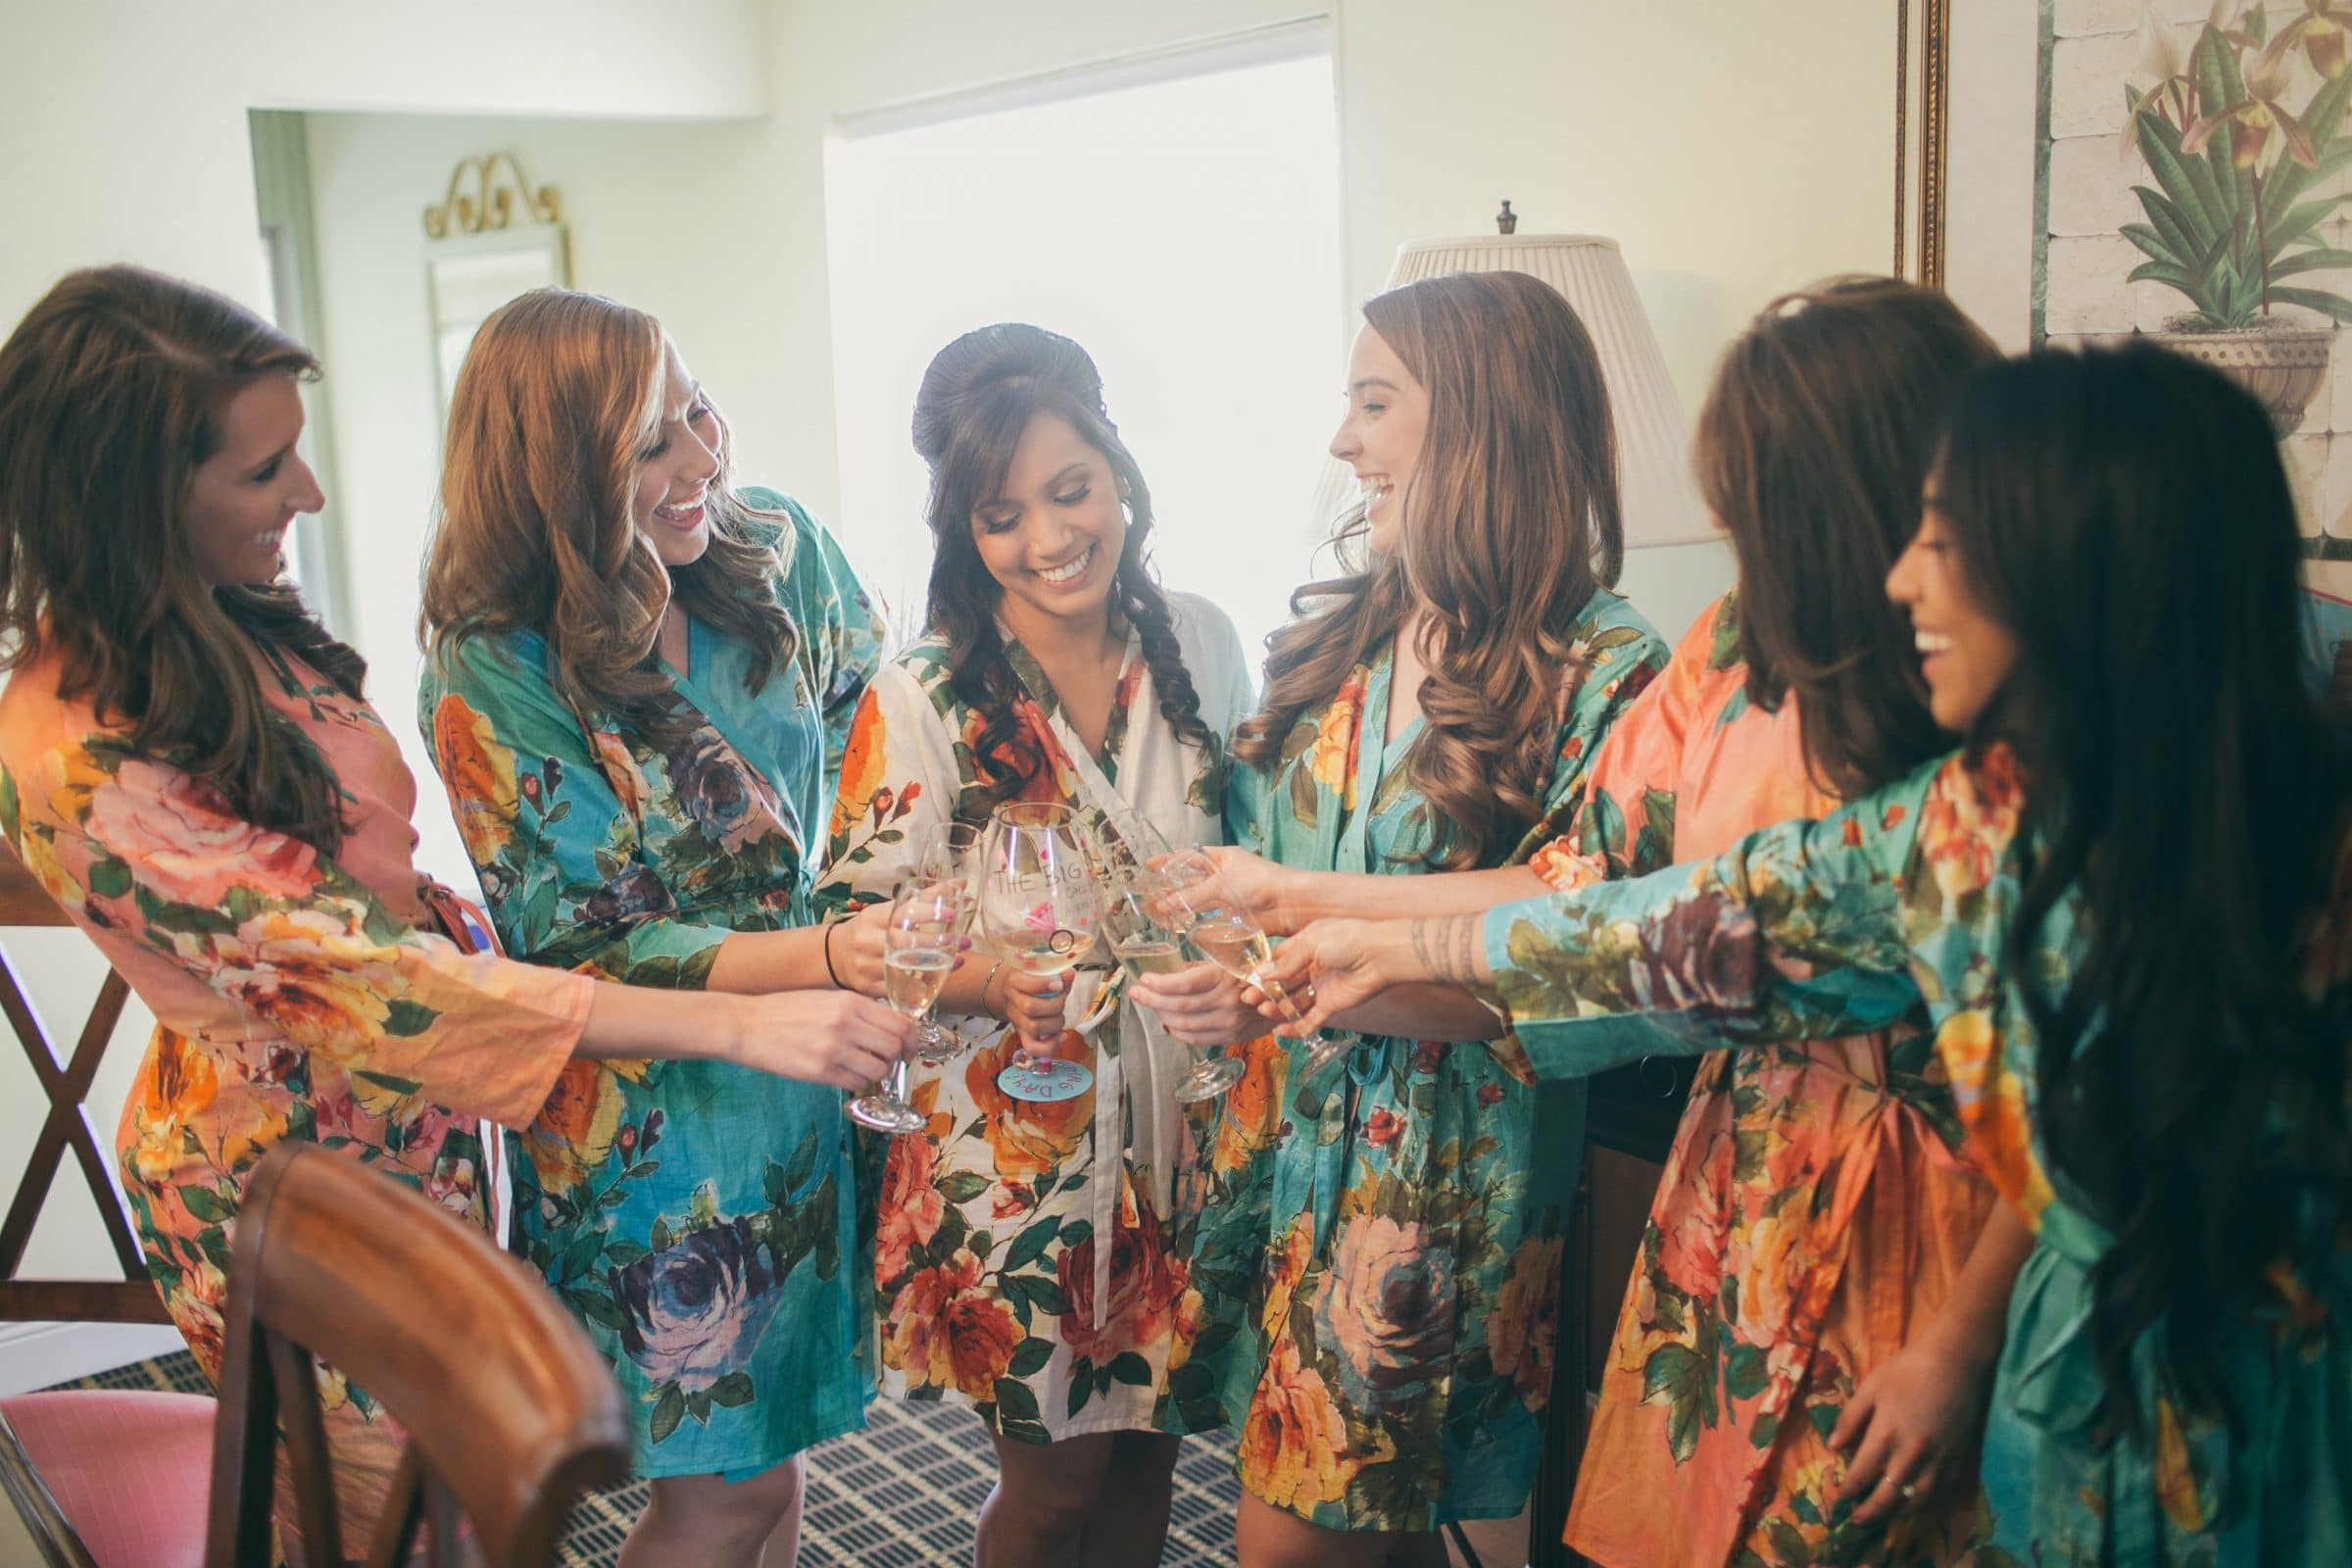 Bride and bridesmaids toasting in floral robes